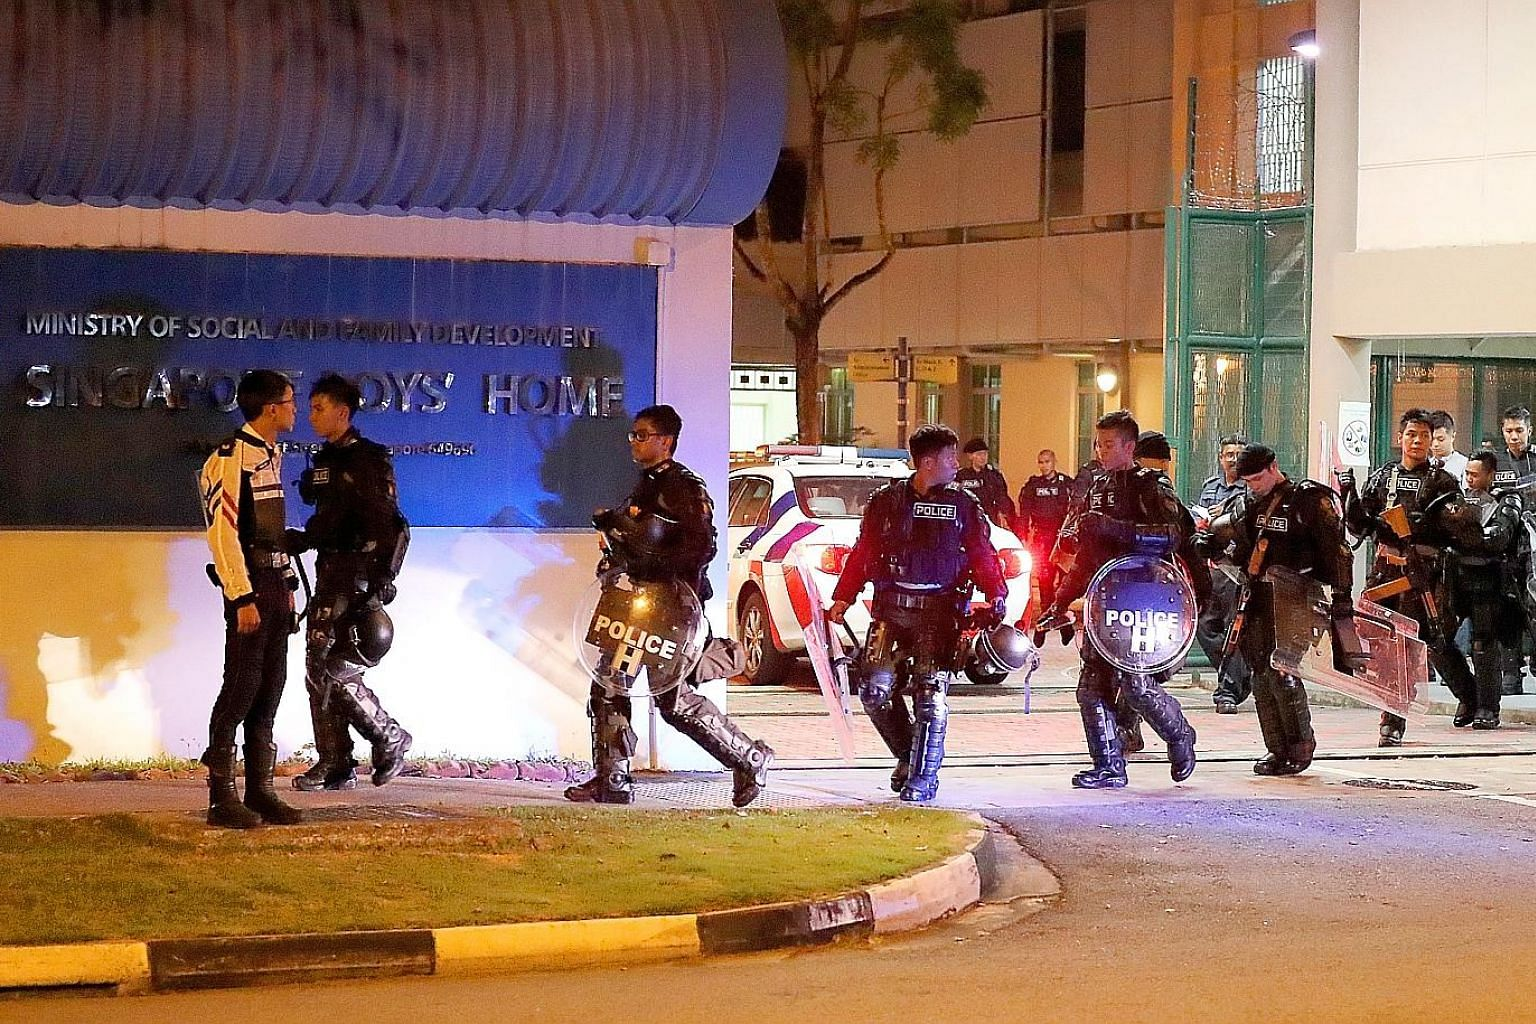 In September 2018, a riot broke out at the Singapore Boys' Home in its former location in Jurong West Street 24 when a group of residents attacked its staff with sports equipment. Three members of the staff were injured - an auxiliary police officer